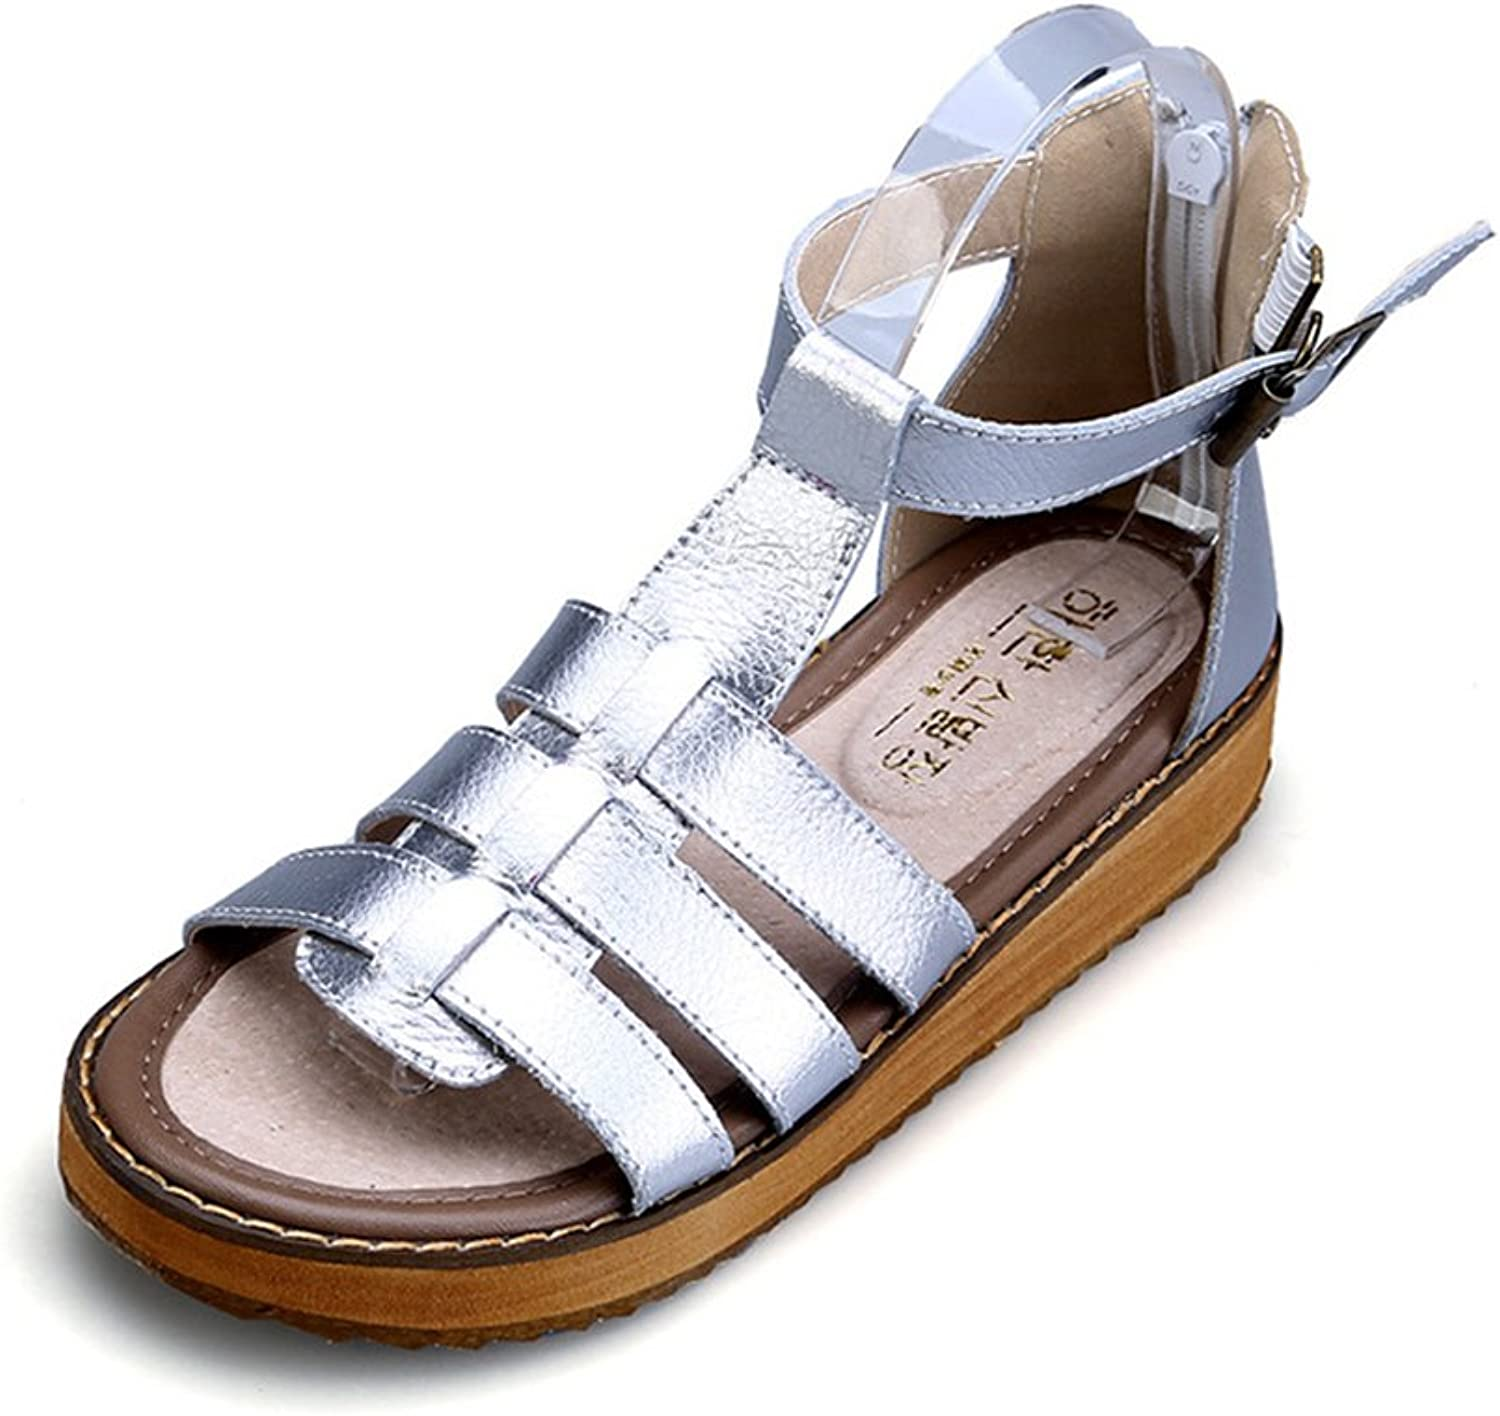 Reiny Women's Leather Casual Flat Fashion Ankle Strap Walking Sandals